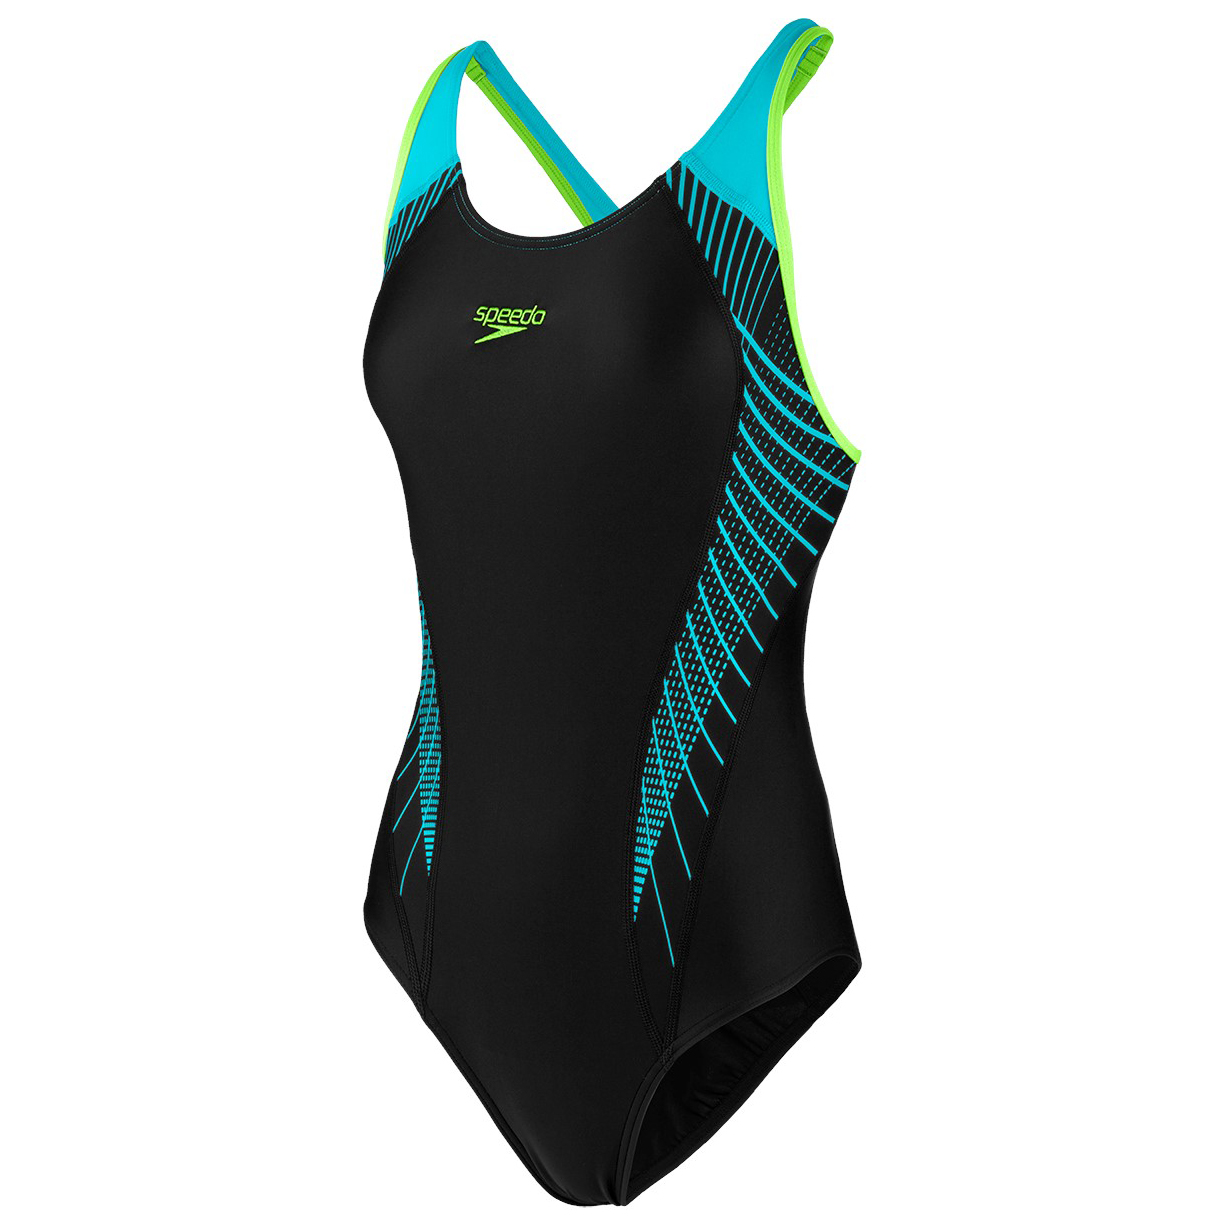 Black Traje Fit Laneback Speedo Bright De Women's Splash Baño Zest36eu Aqua Yf6gyvb7